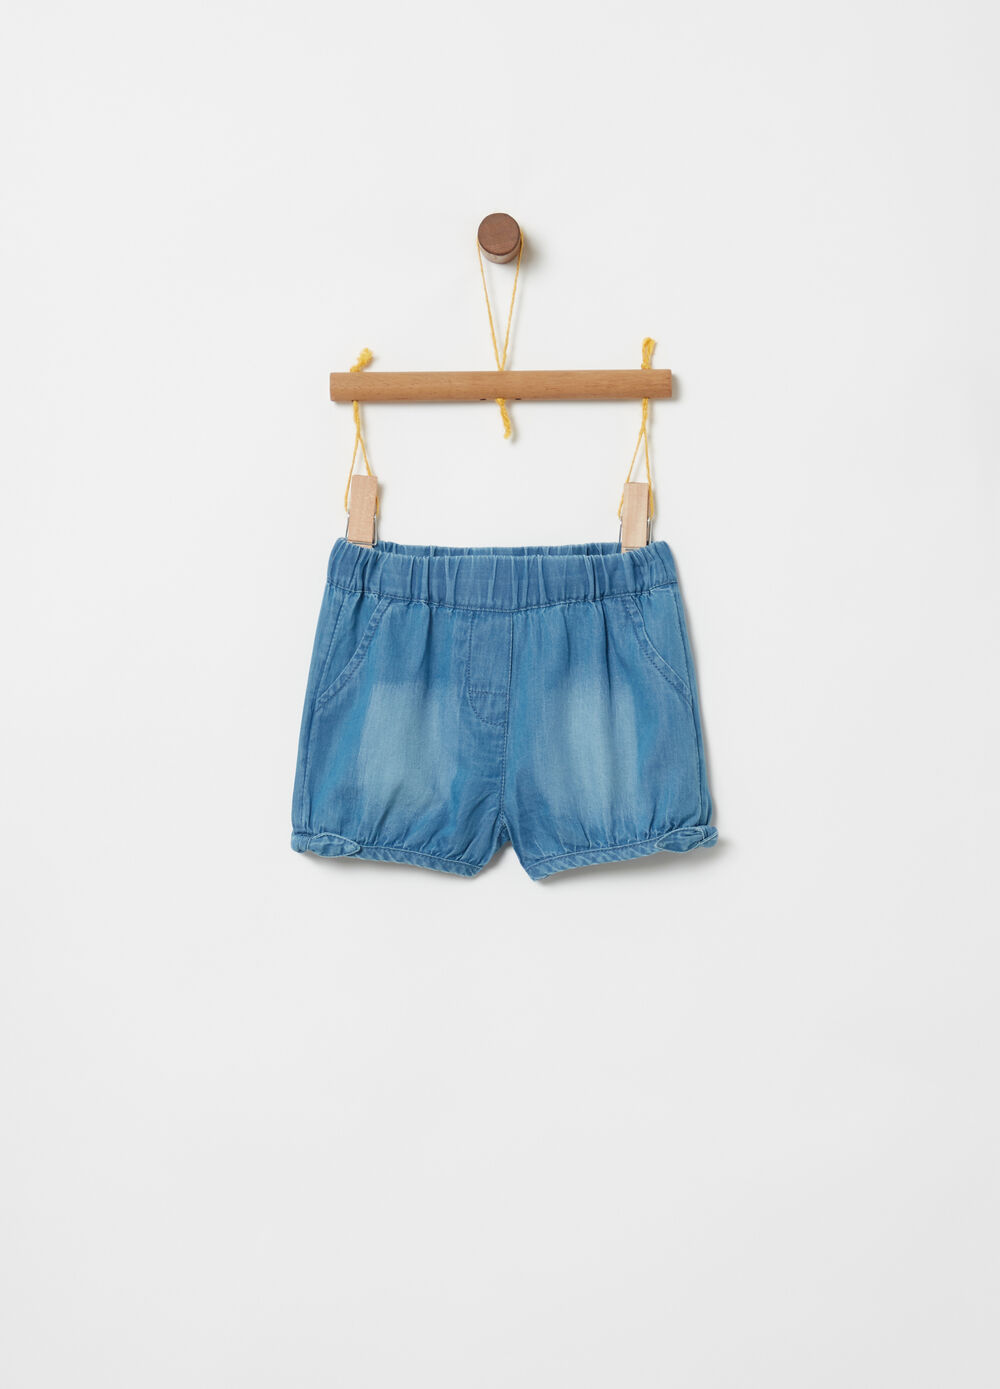 Lightweight denim shorts with elasticated waist and bows